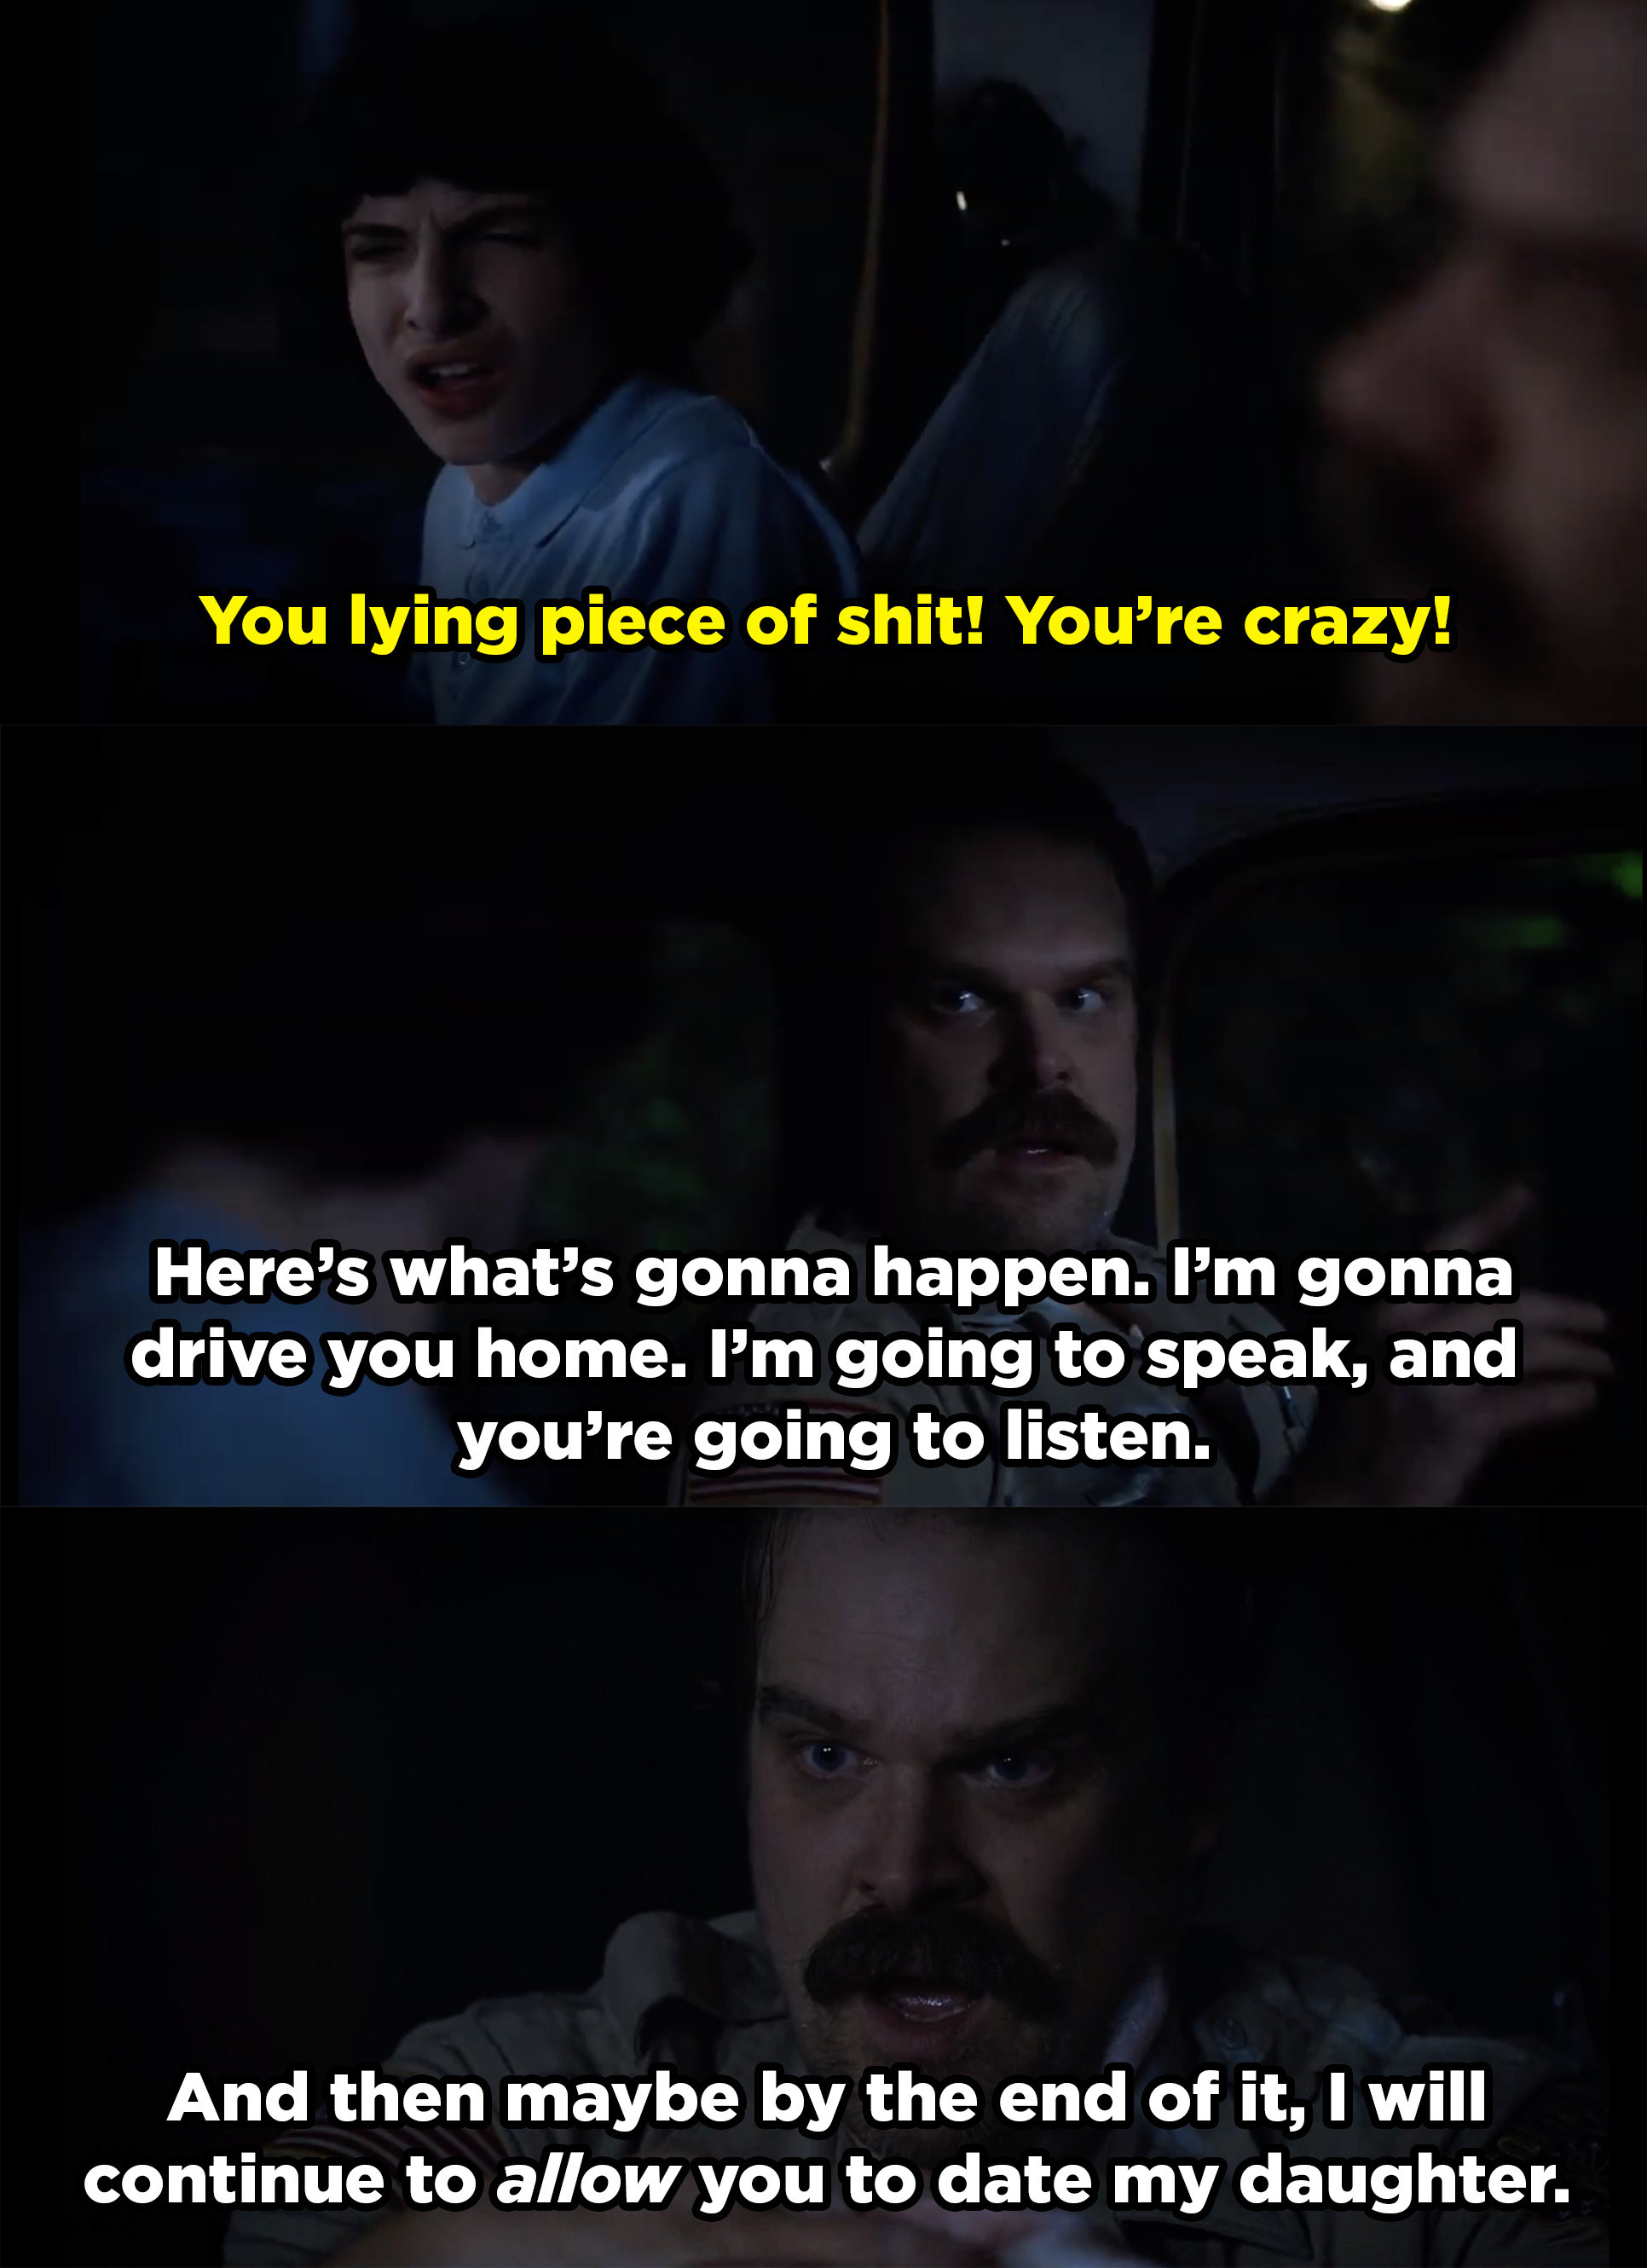 Mike tells Hopper he's crazy, so Hopper puts him in his place.